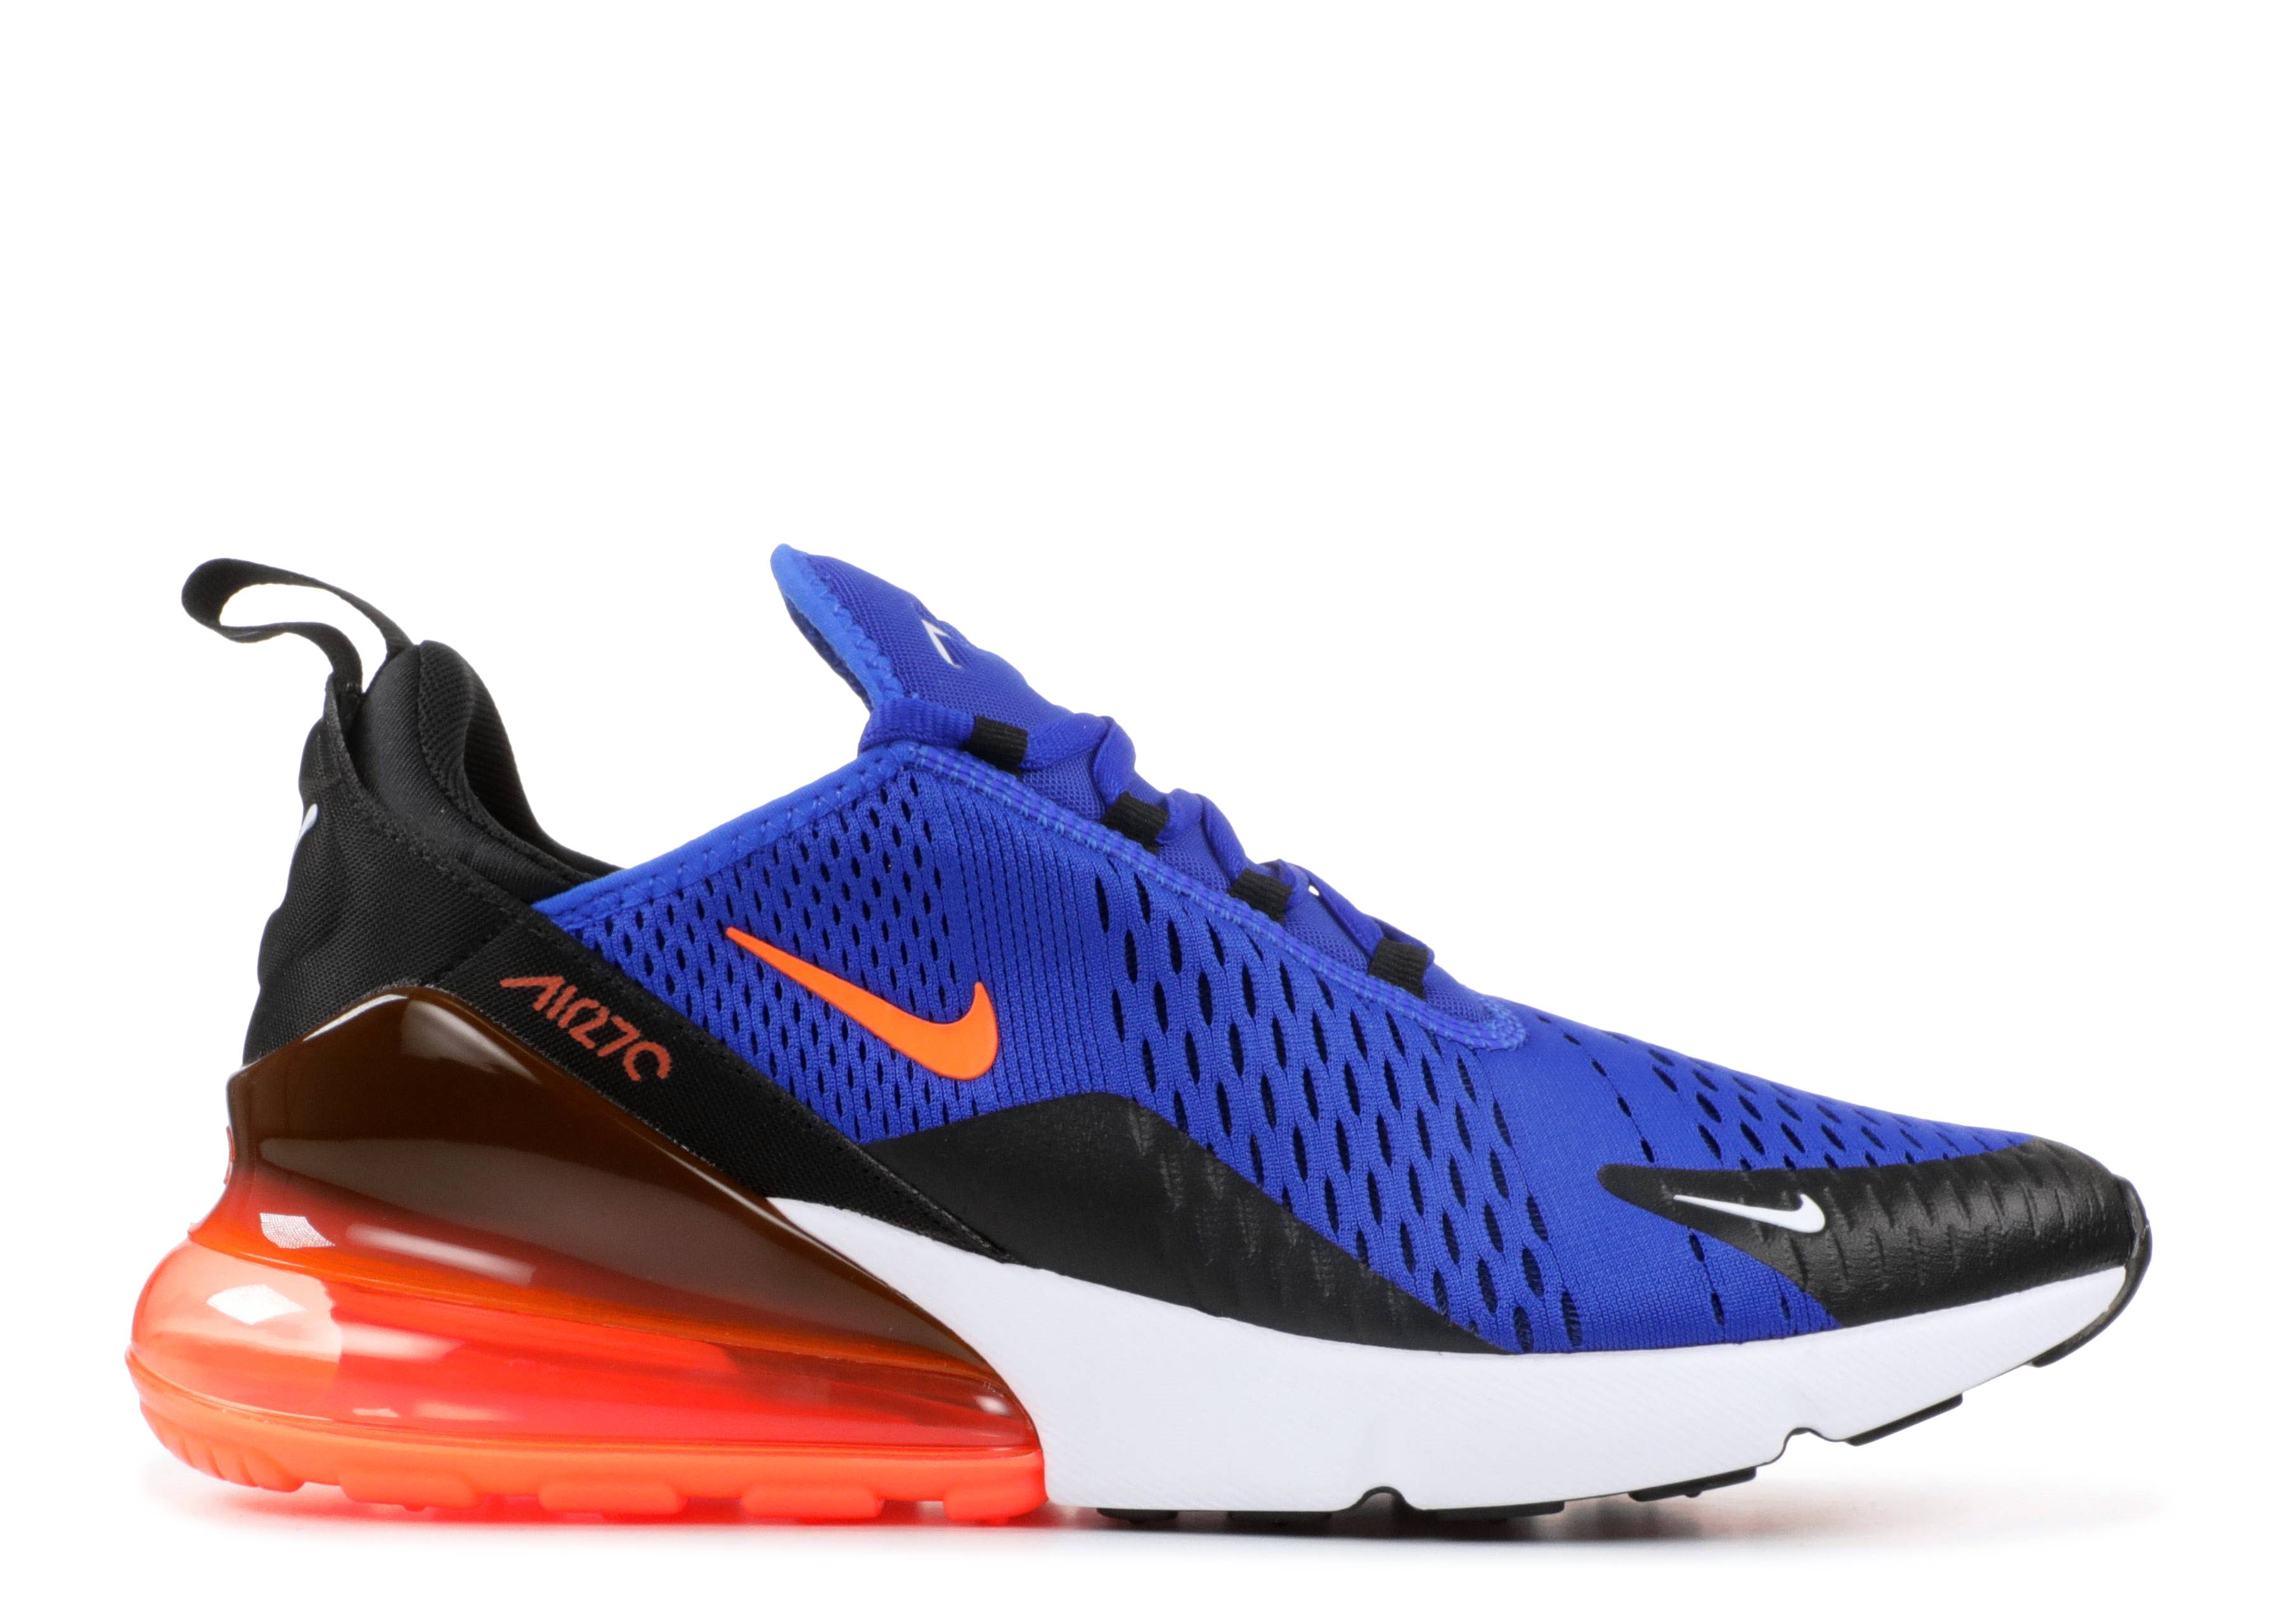 cd1676dd82 Air Max 270 - Nike - ah8050 401 - racer blue/hyper crimson-black ...